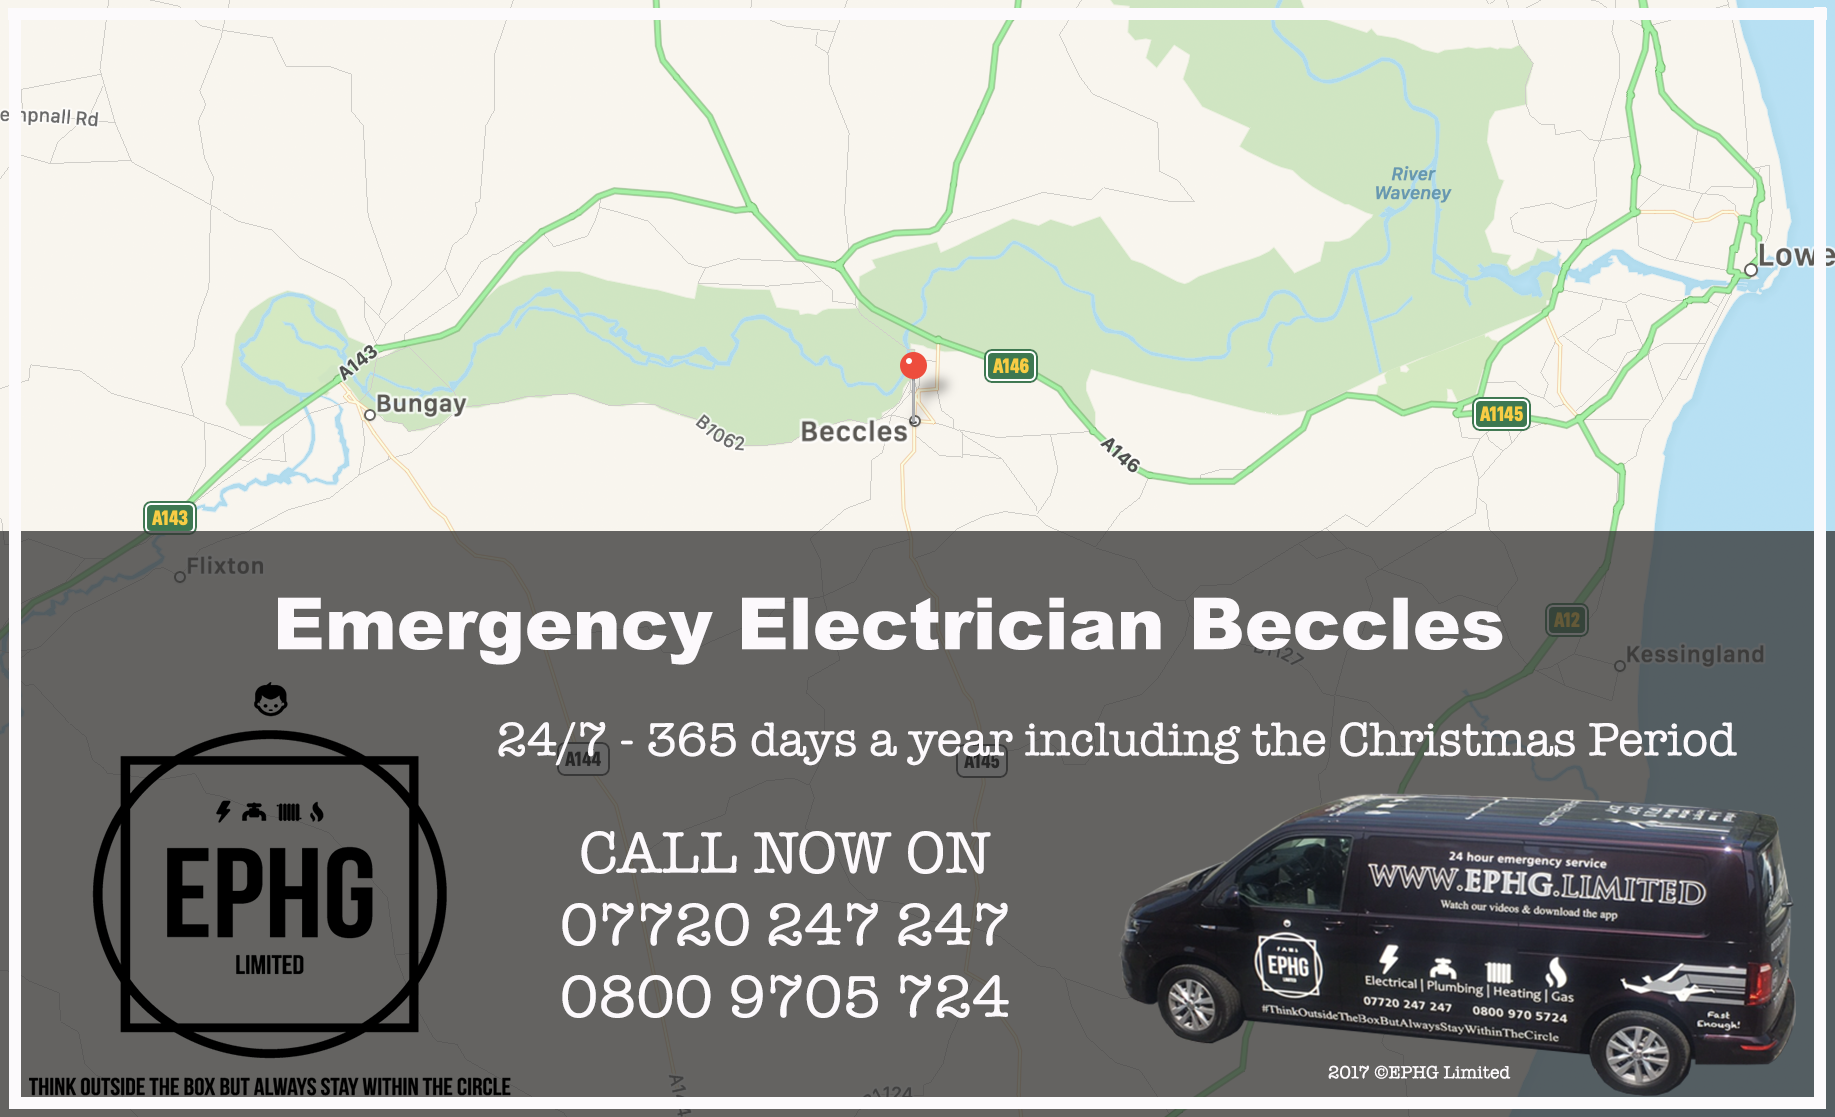 Emergency Electrician Beccles